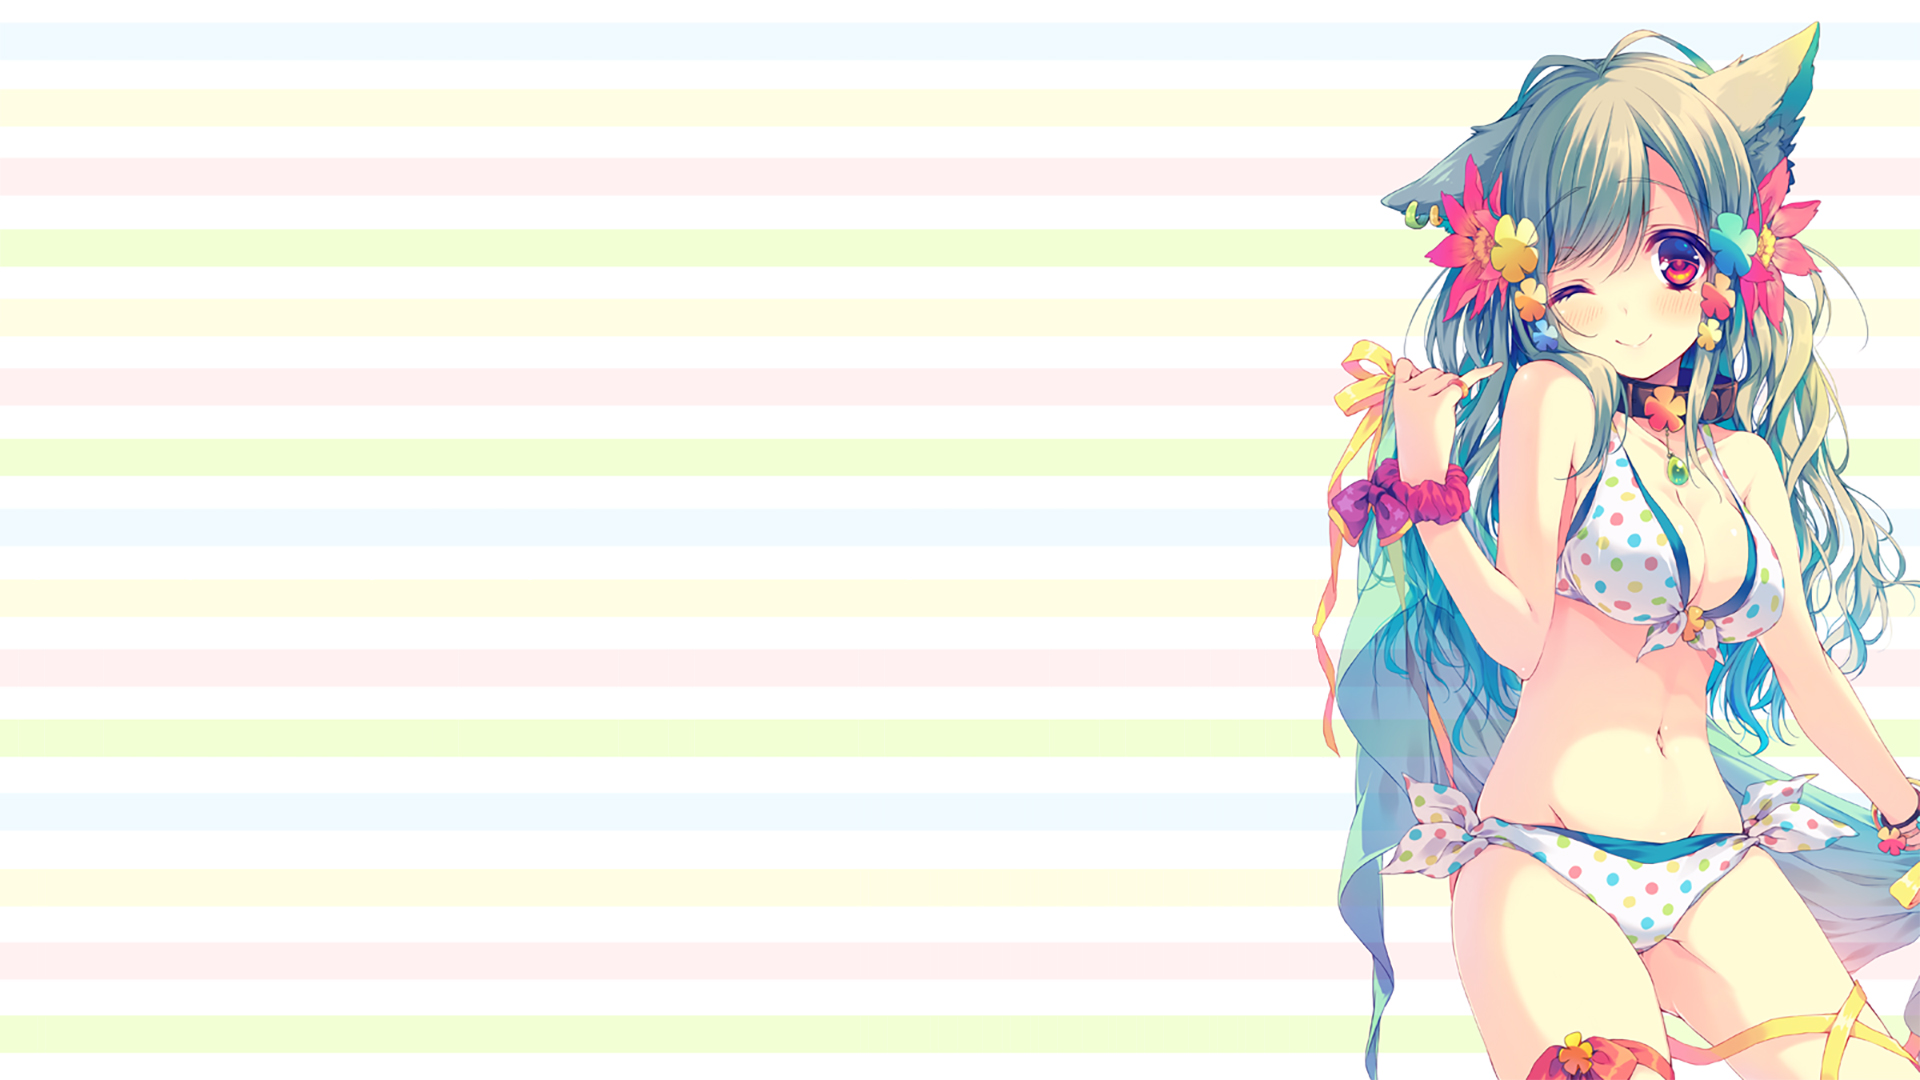 Cute-colorful-anime-girl-1920x1080-Need-iPhone-S-Plus-Background-for-IPhoneSPlu-wallpaper-wp3604455